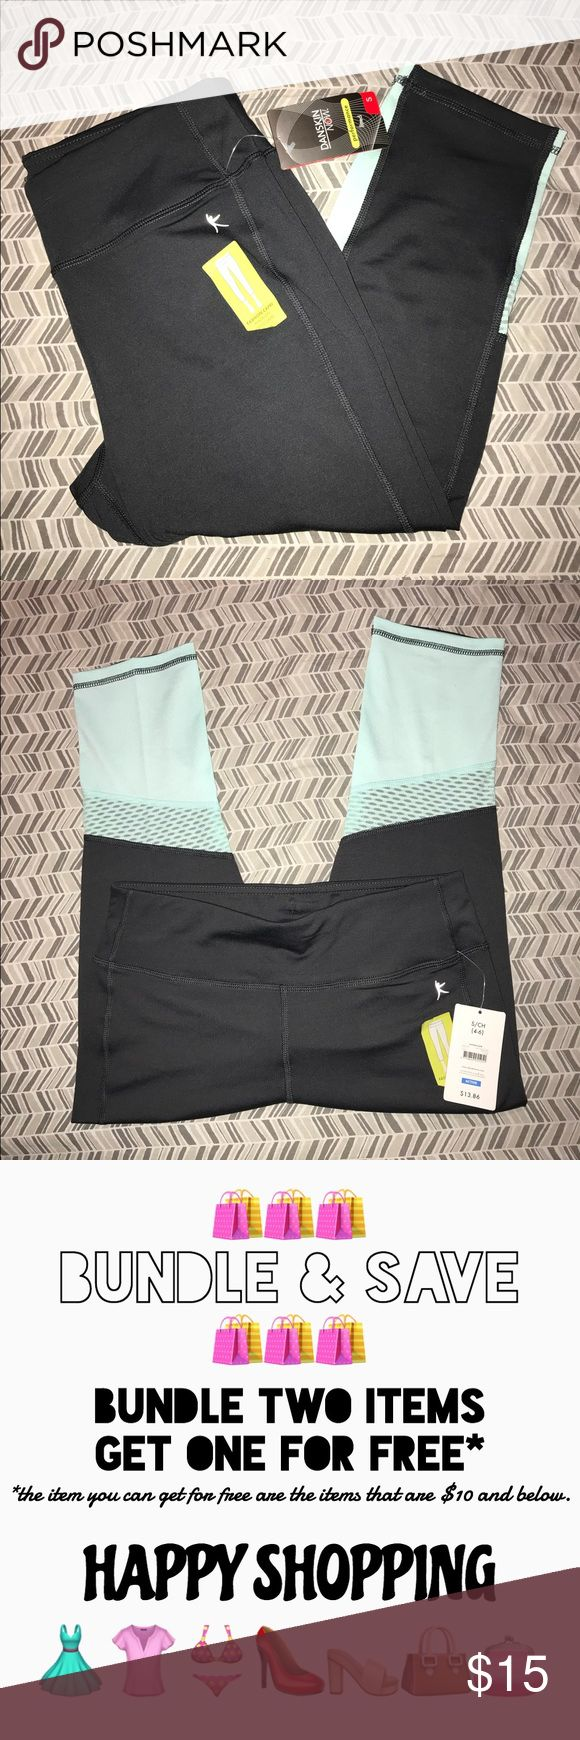 Yoga Capri Pants Size Small NEW WITH TAGS❗️ Mesh style at the calves. Color: Gray and mint  💁🏽Open to offers 🙅🏽But don't lowball 🚫Pet & Smoke free home🏡   For cheaper shipping, check out my eBay. 👤username: SLNSL91  My loss your gain 😉 Walmart Pants Ankle & Cropped